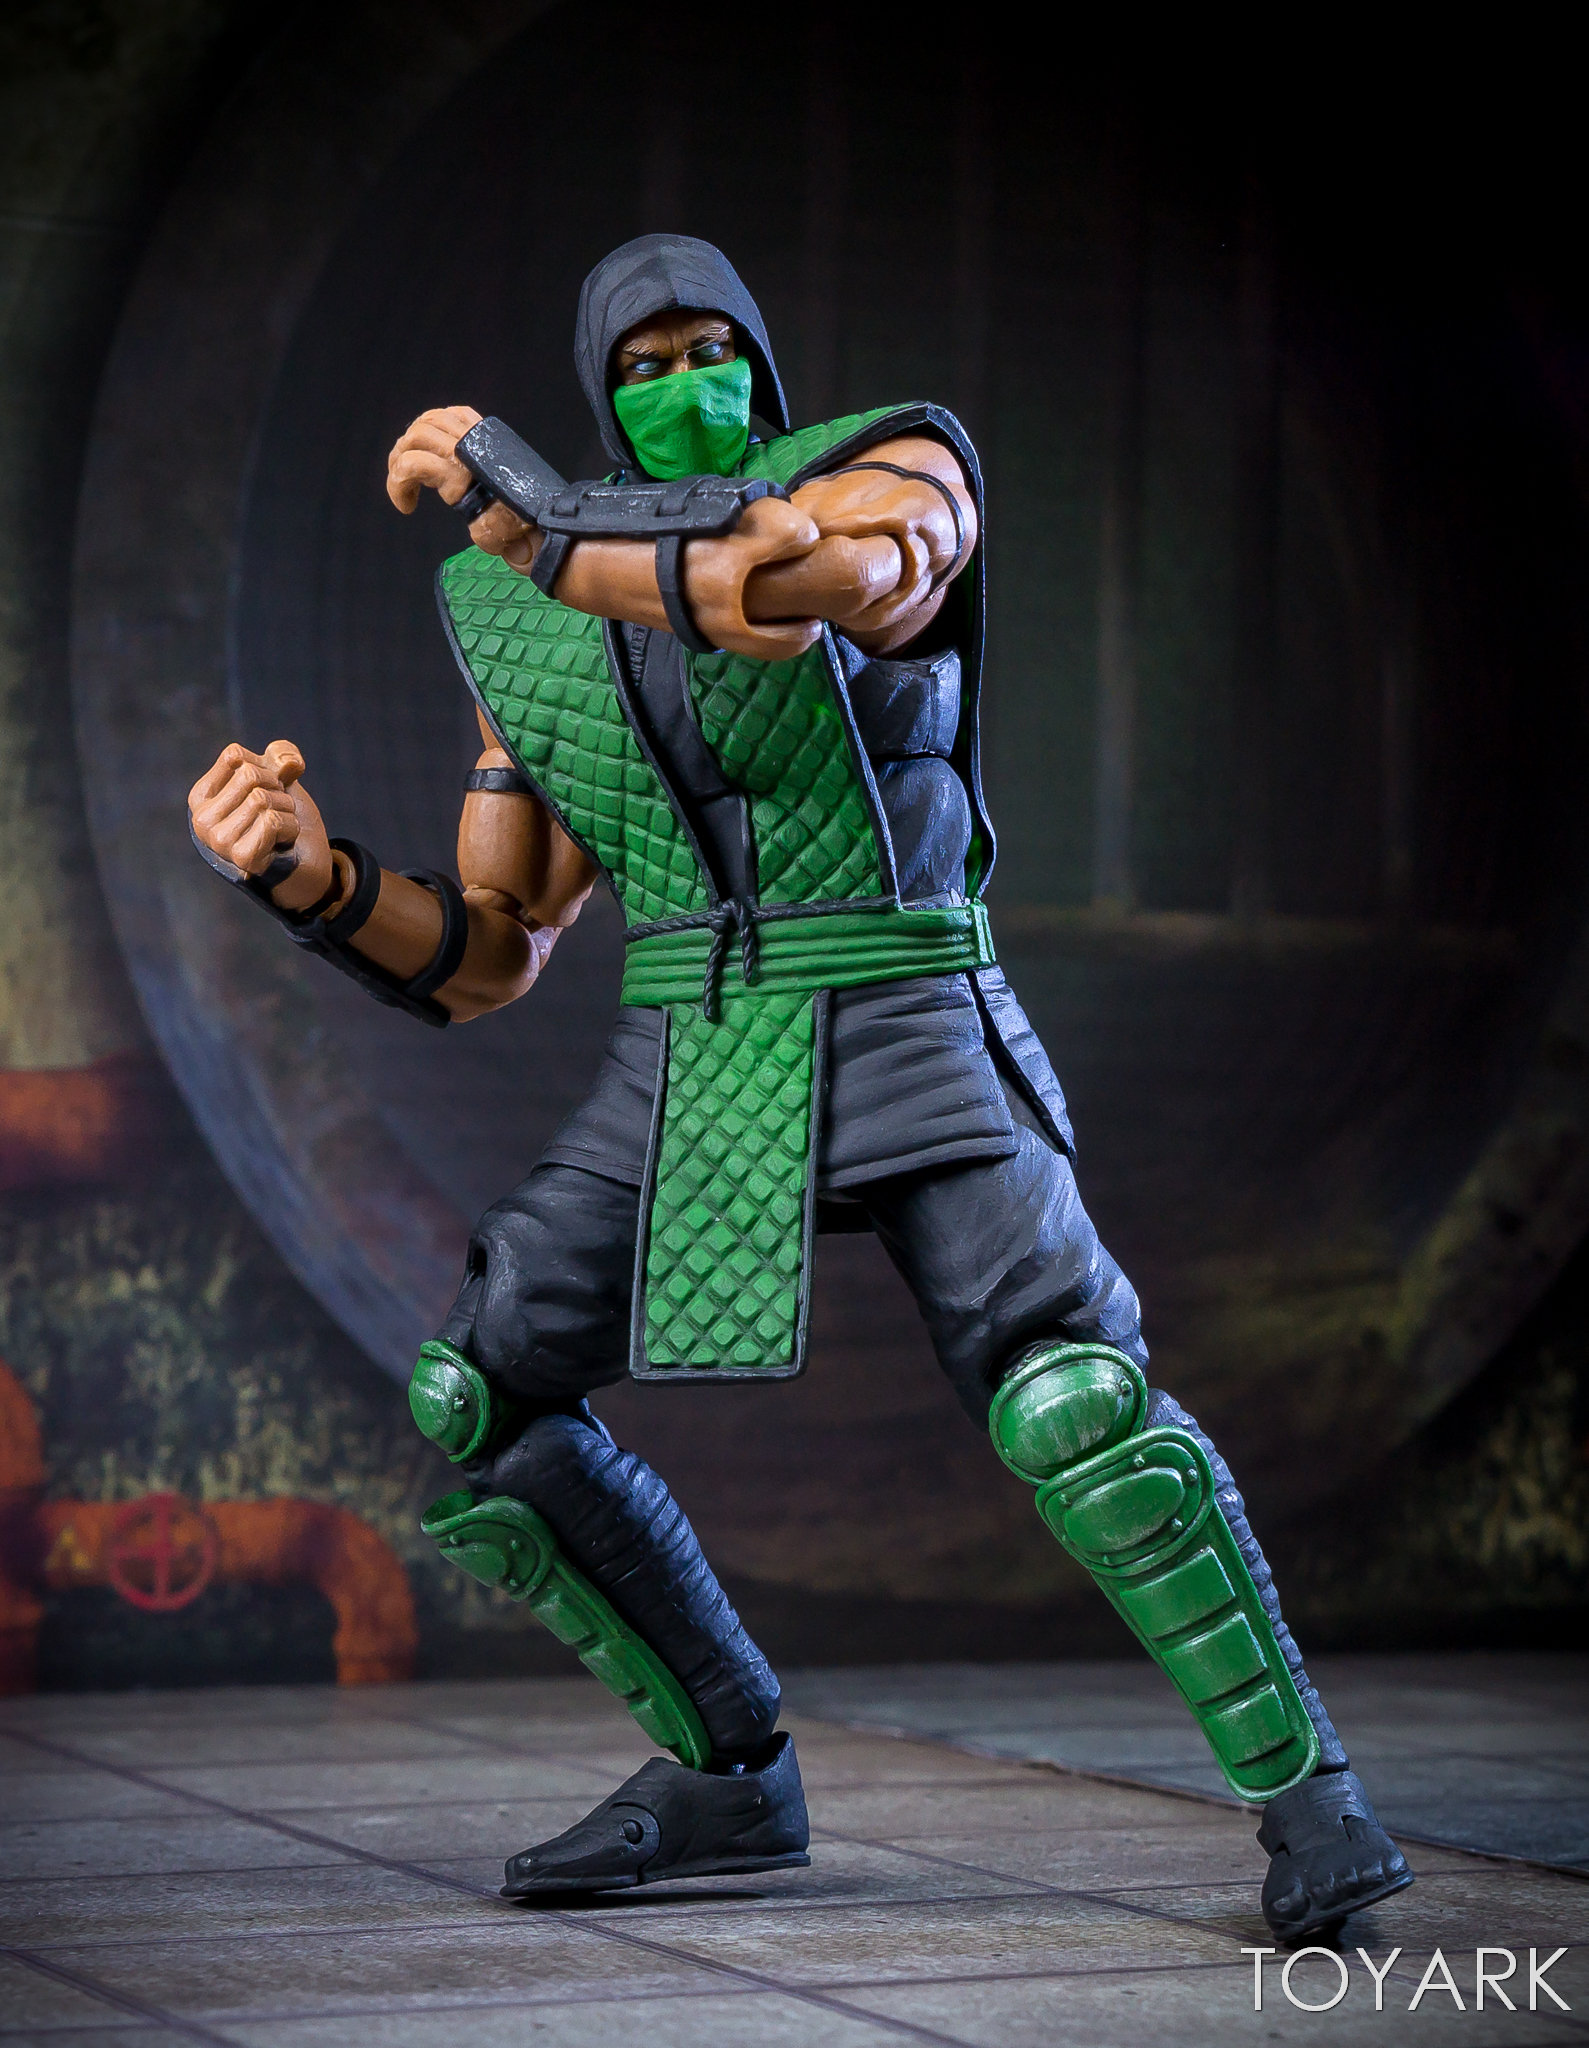 http://news.toyark.com/wp-content/uploads/sites/4/2018/02/Storm-Mortal-Kombat-Reptile-013.jpg